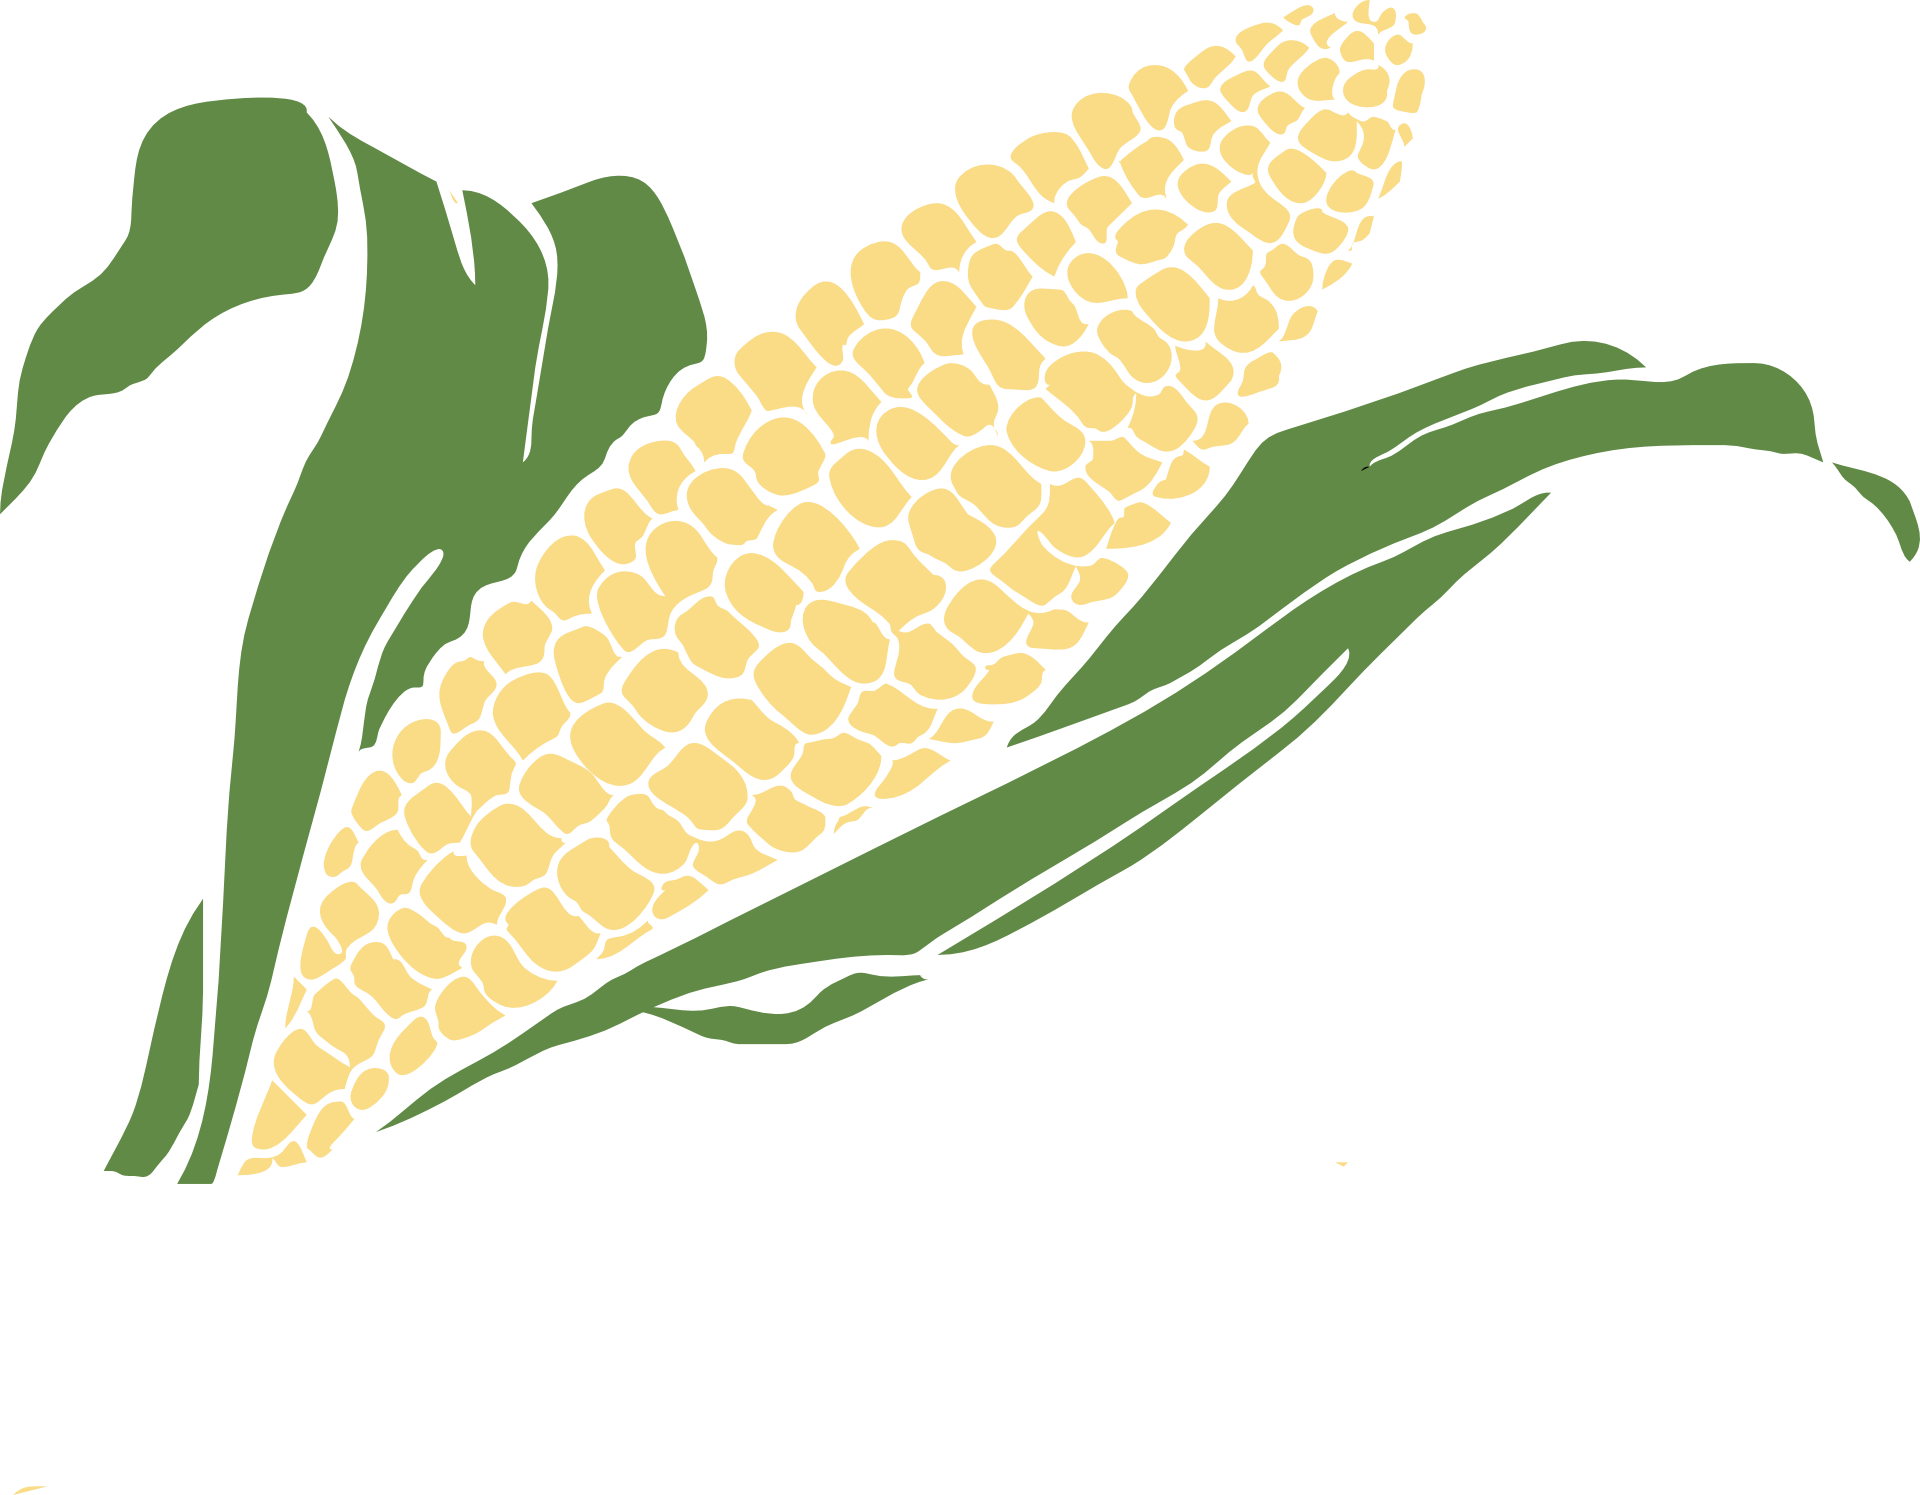 Drawing vegetable crop. Of corn free image